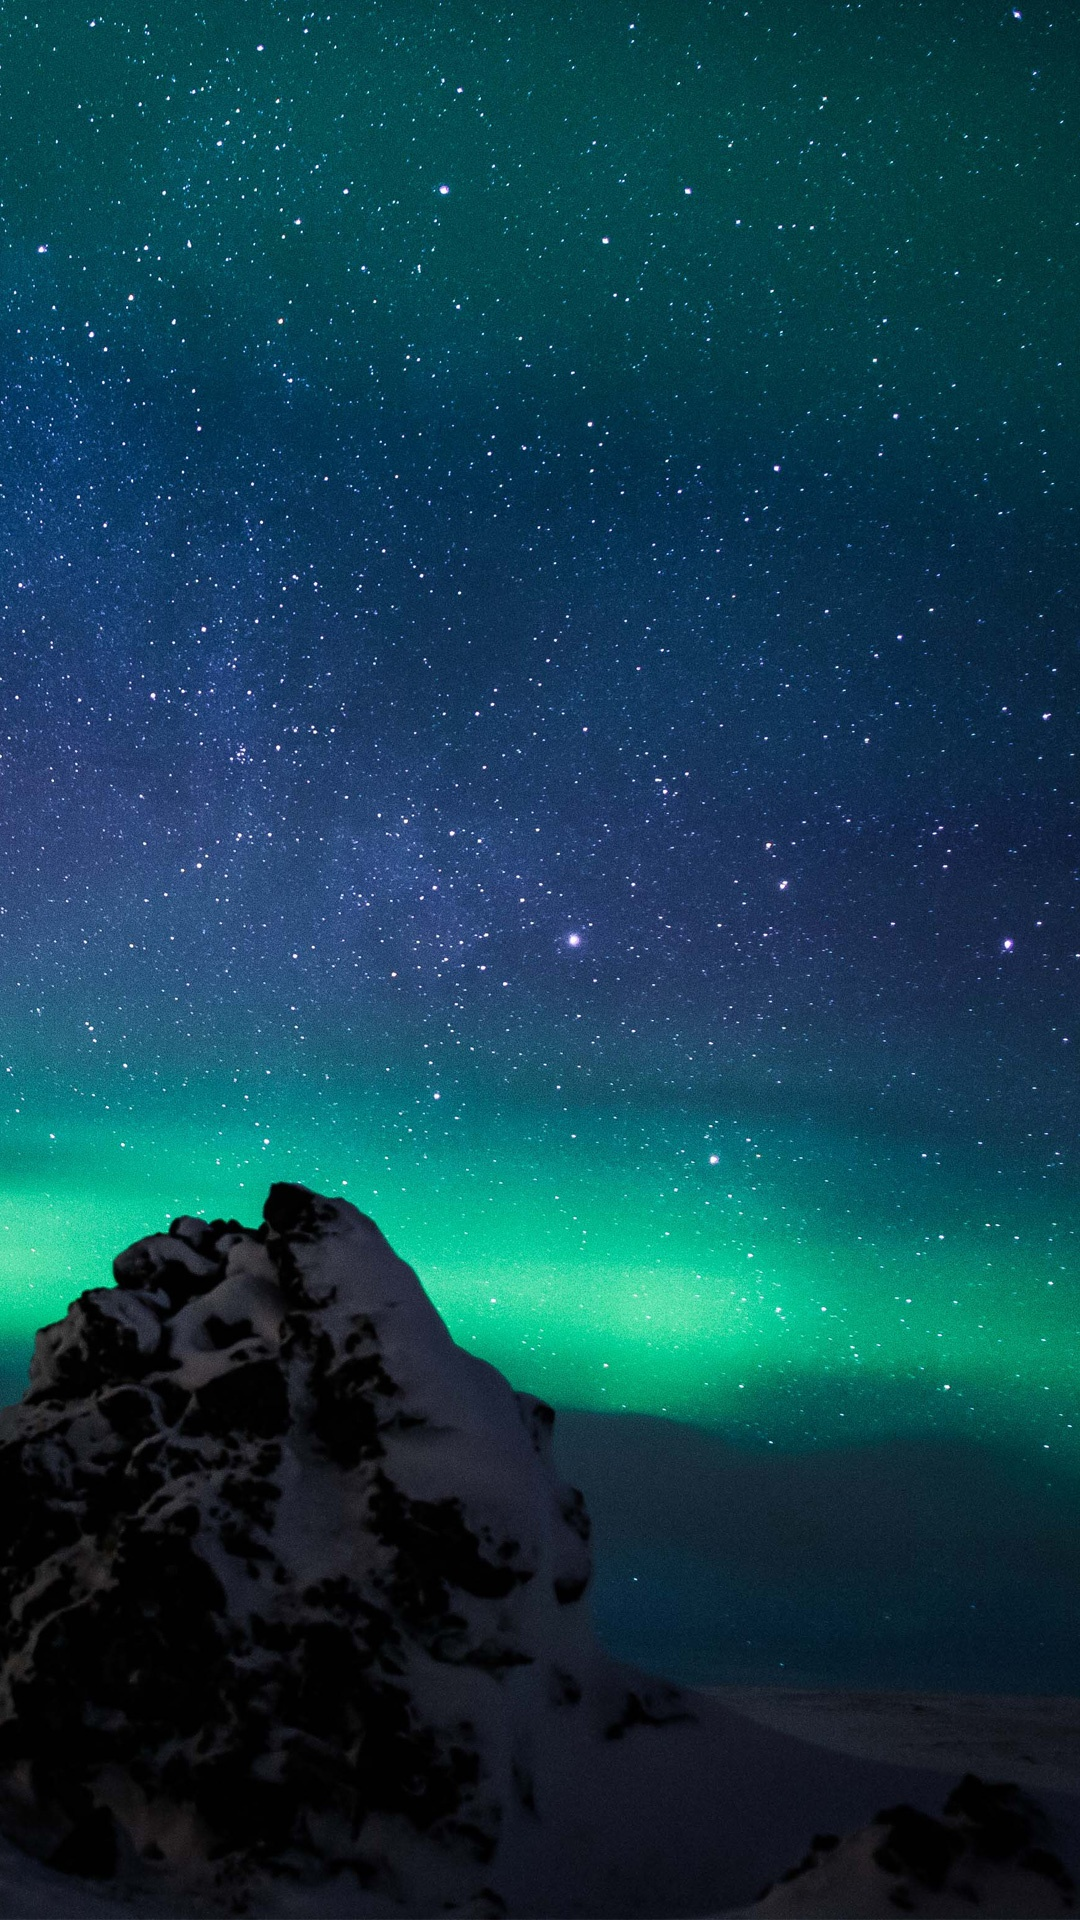 Summer Android Wallpaper Quotes Download Free Aurora Borealis Background For Mobile